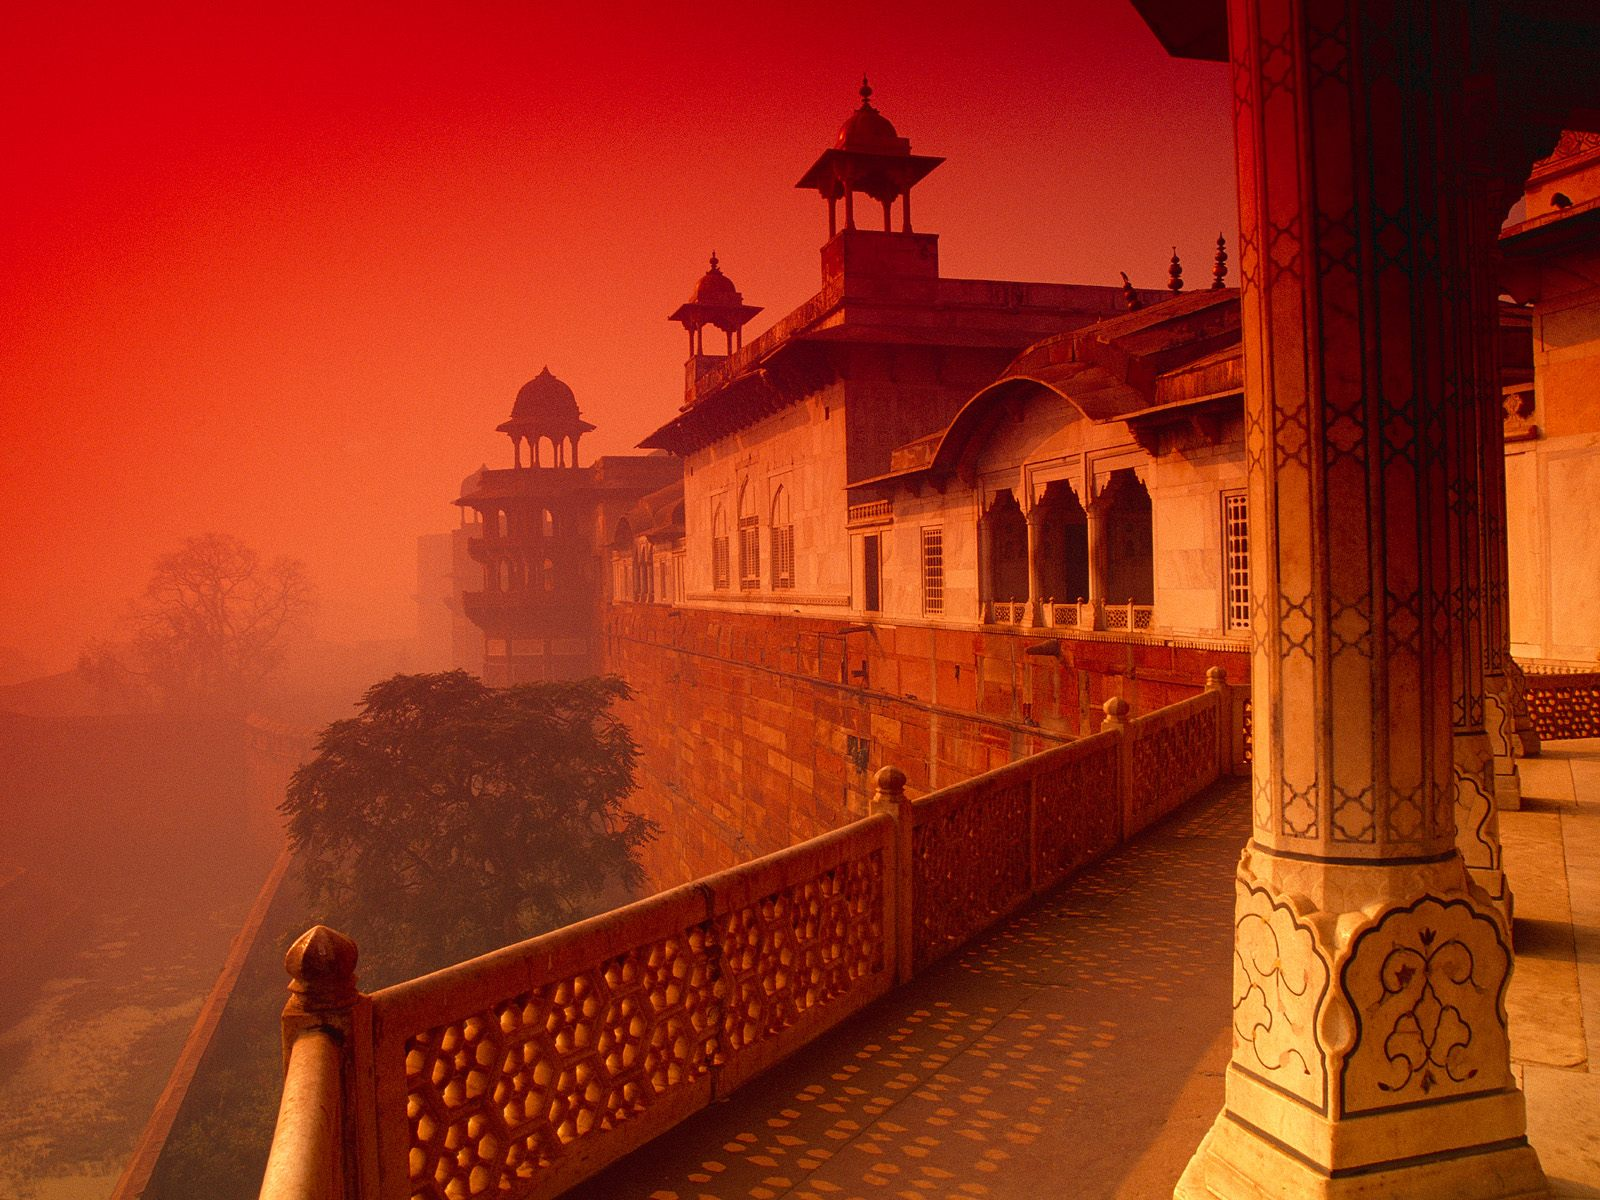 Agra Fort, India 375.76 Kb